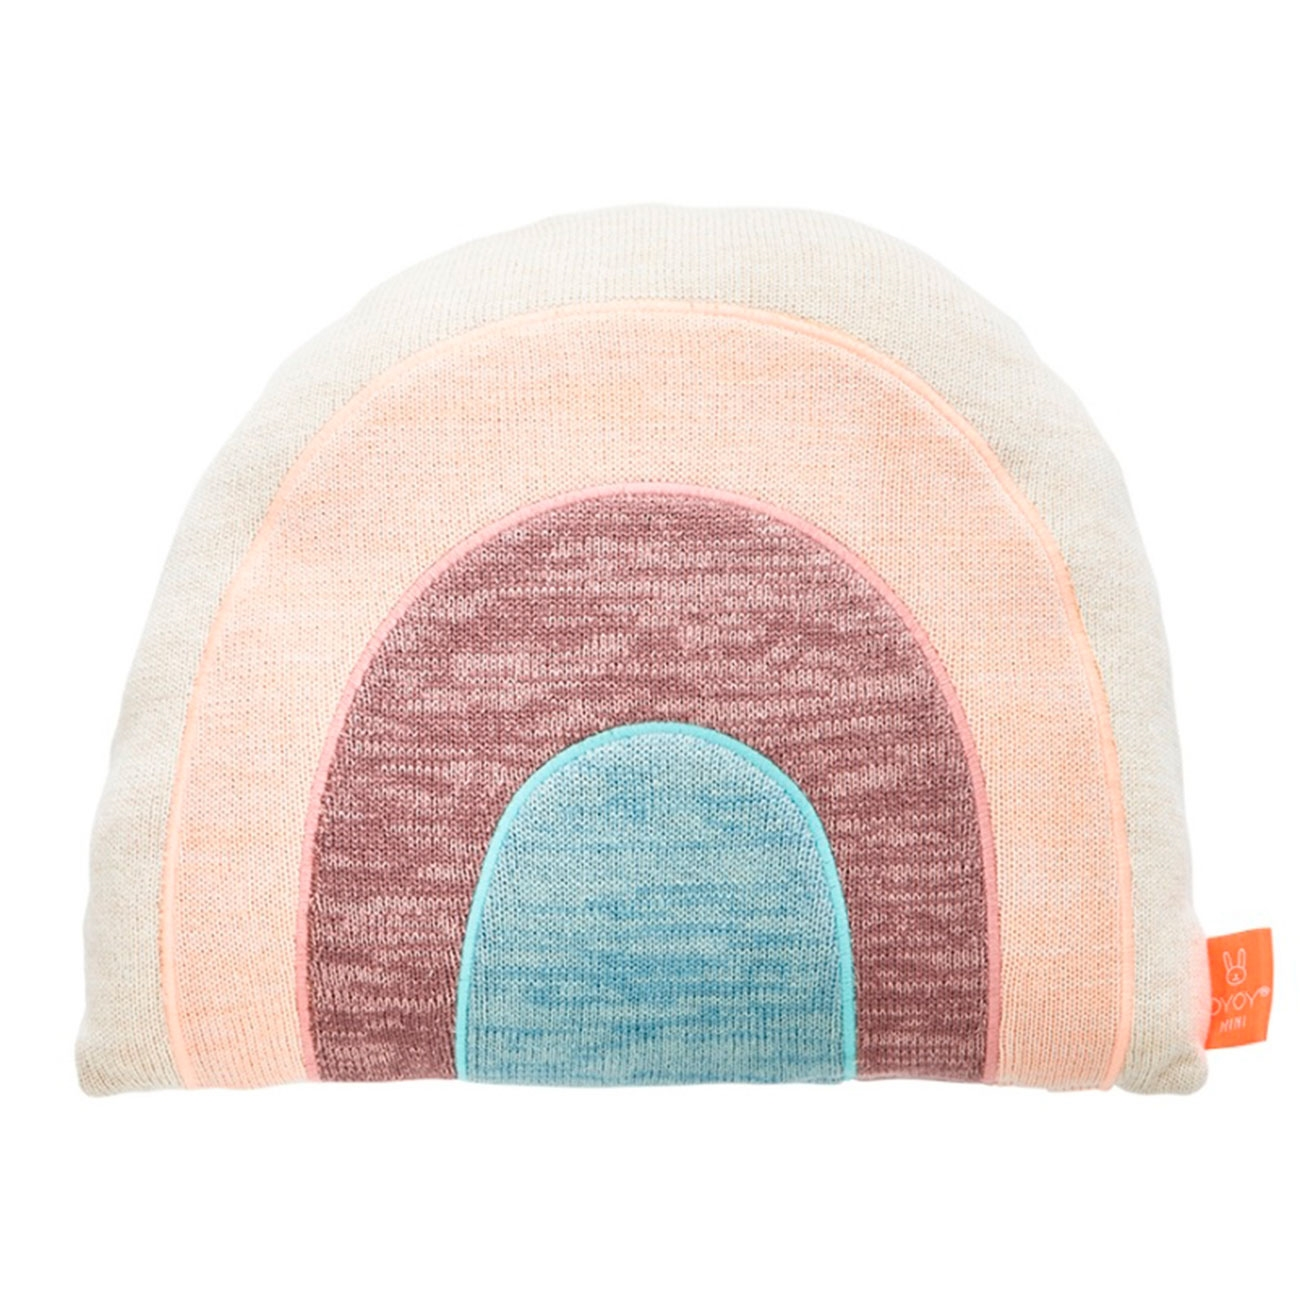 oyoy-cushion-pude-pillow-pyntepude-rainbow-regnbue-interior-1104028-404-1